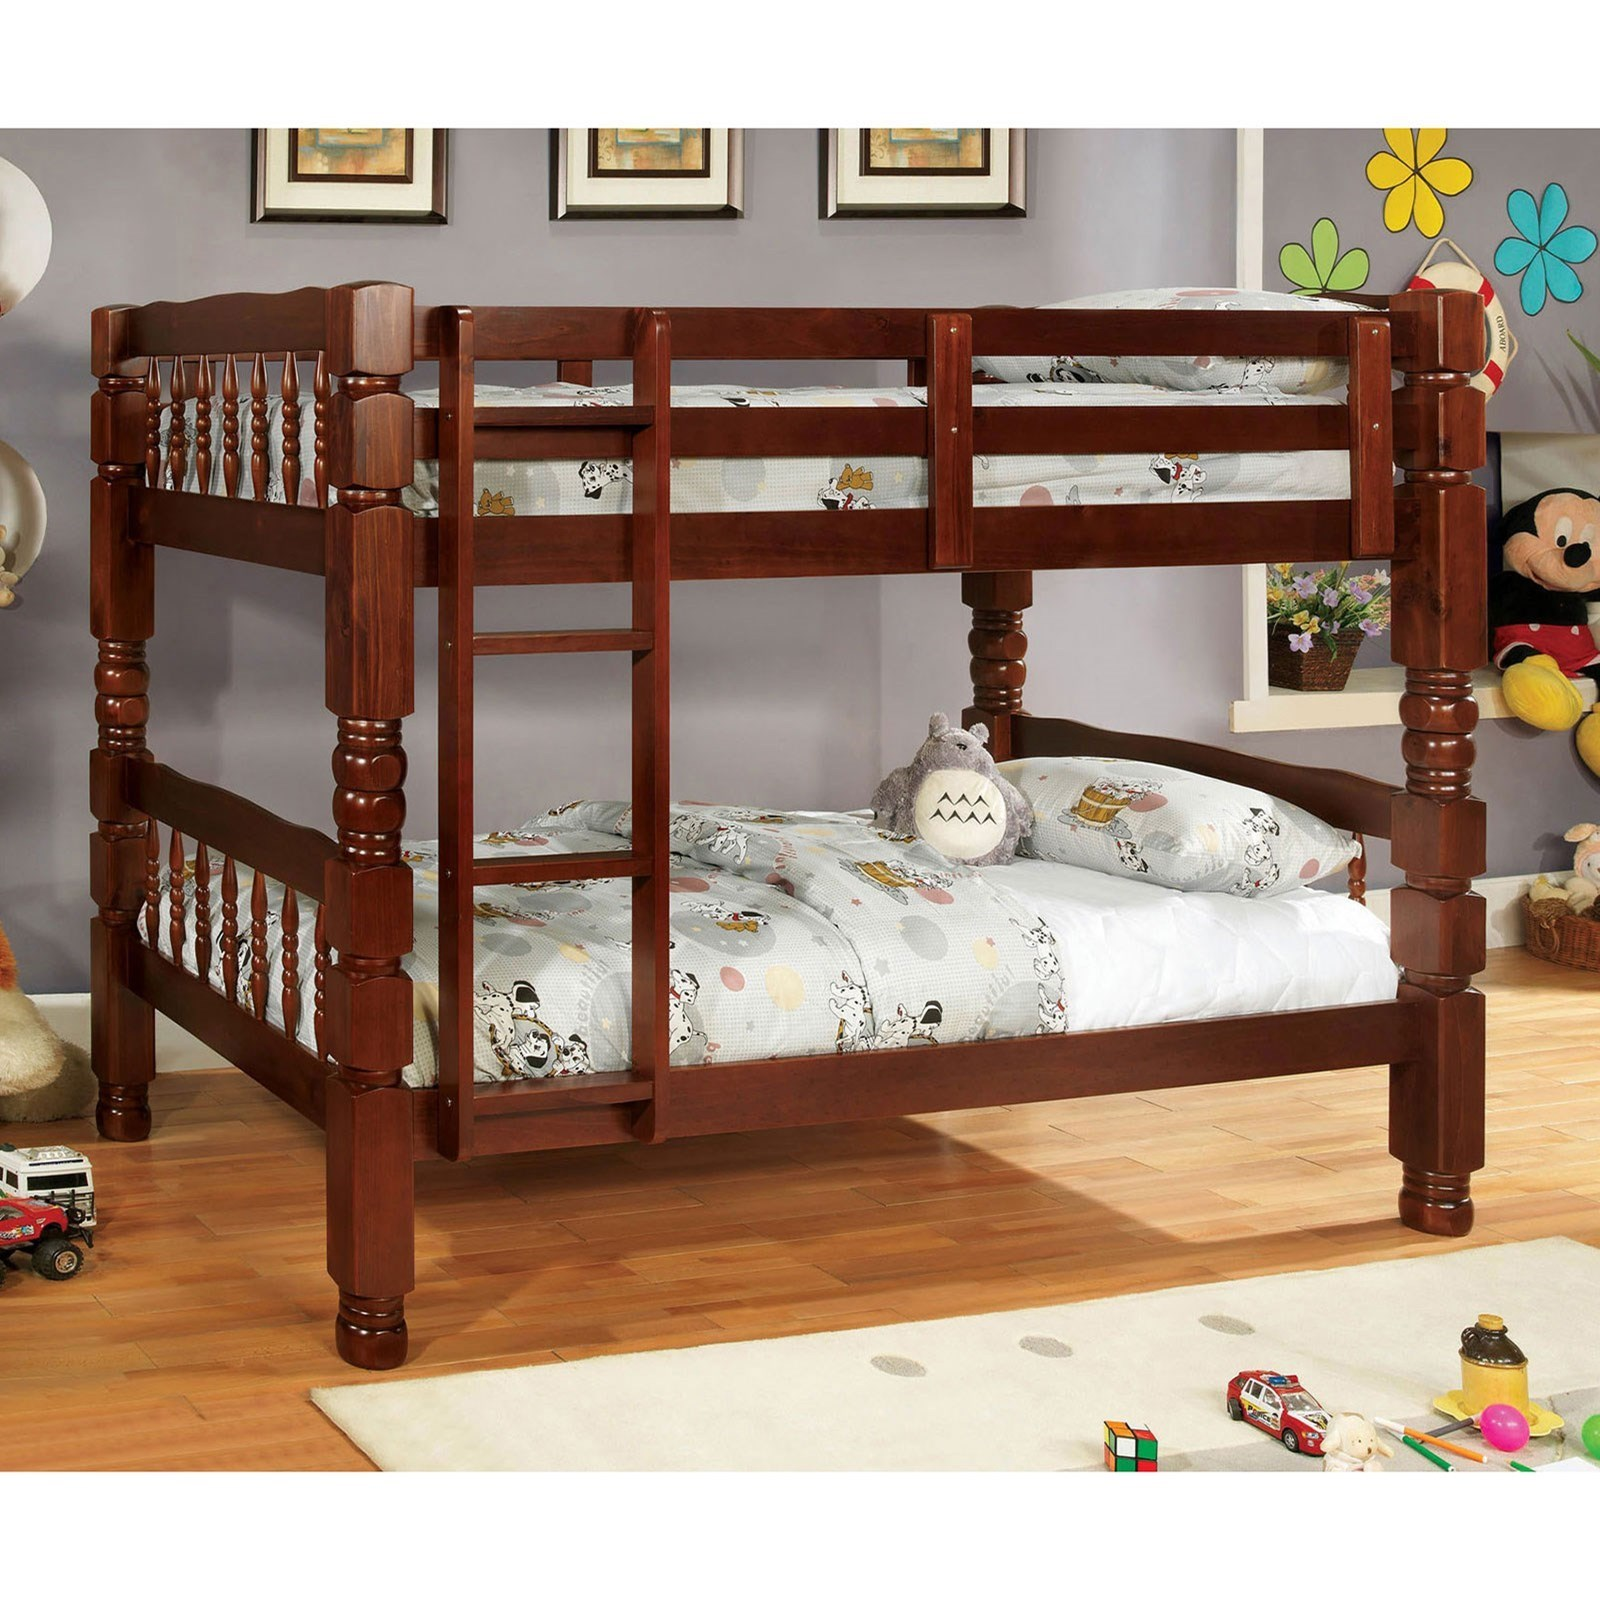 Carolina Twin-over-Twin Bunk Bed at Household Furniture